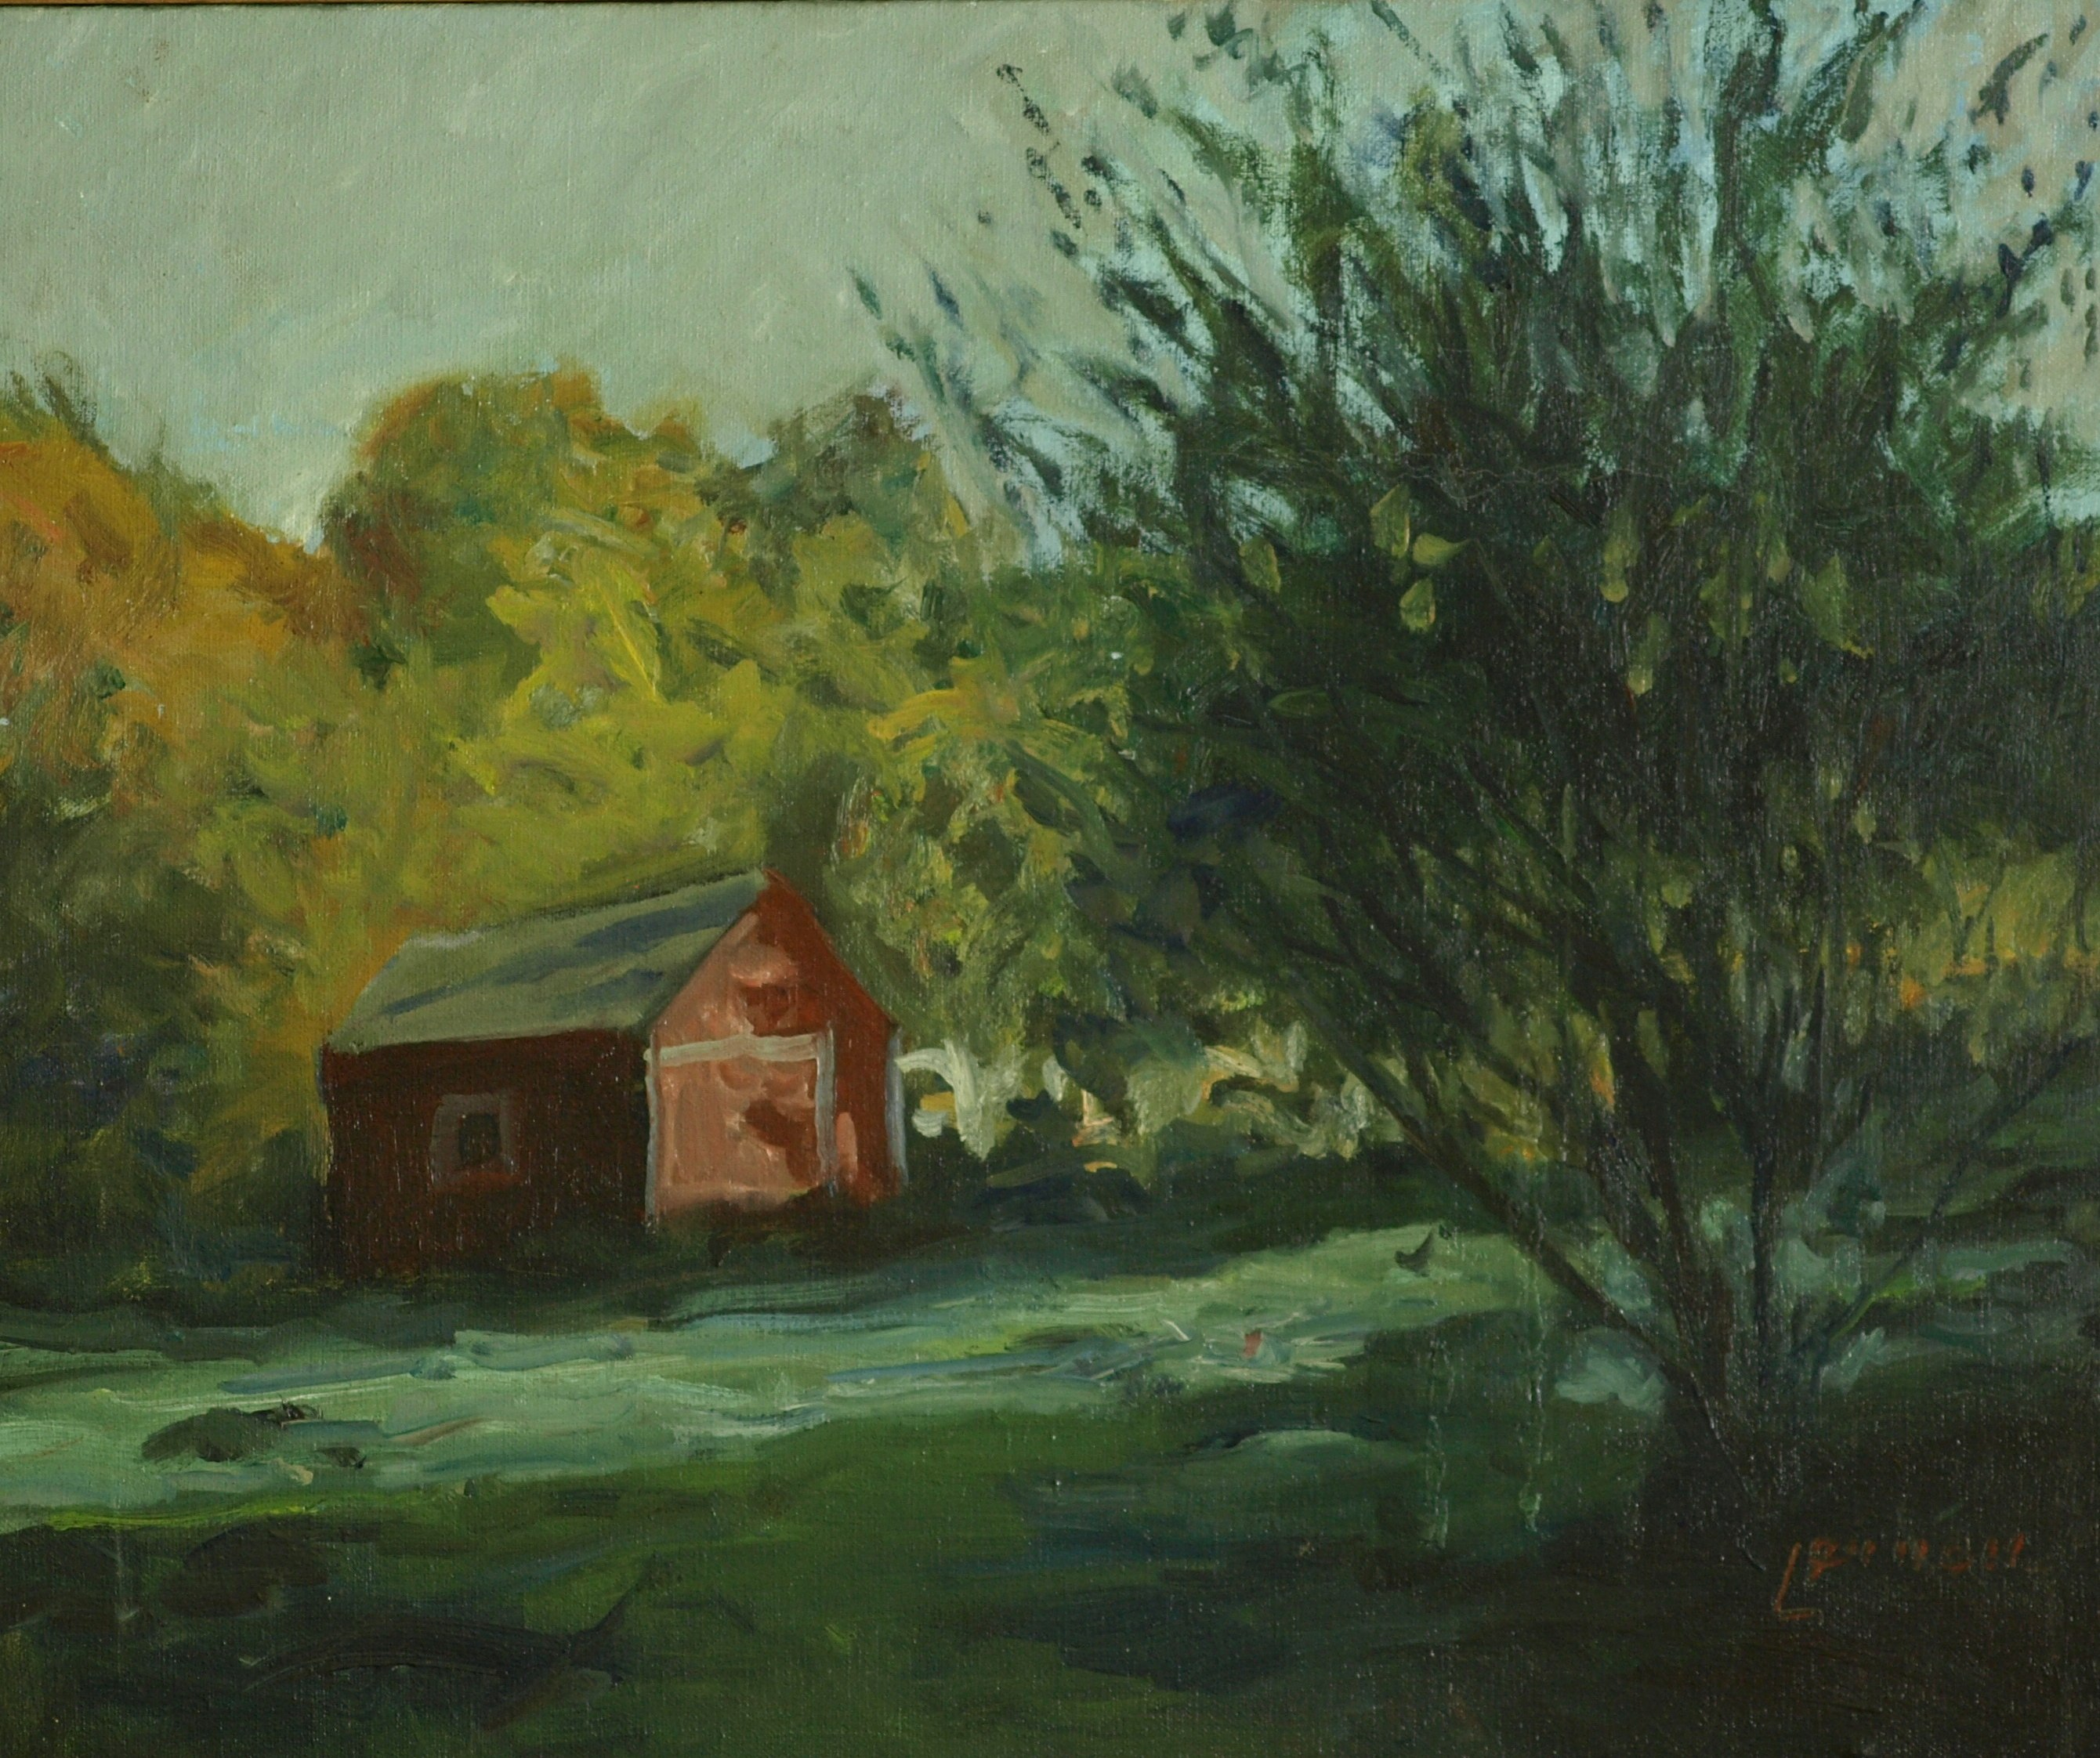 Summer Afternoon, Oil on Canvas, 20 x 24 Inches, by Bernard Lennon, $875